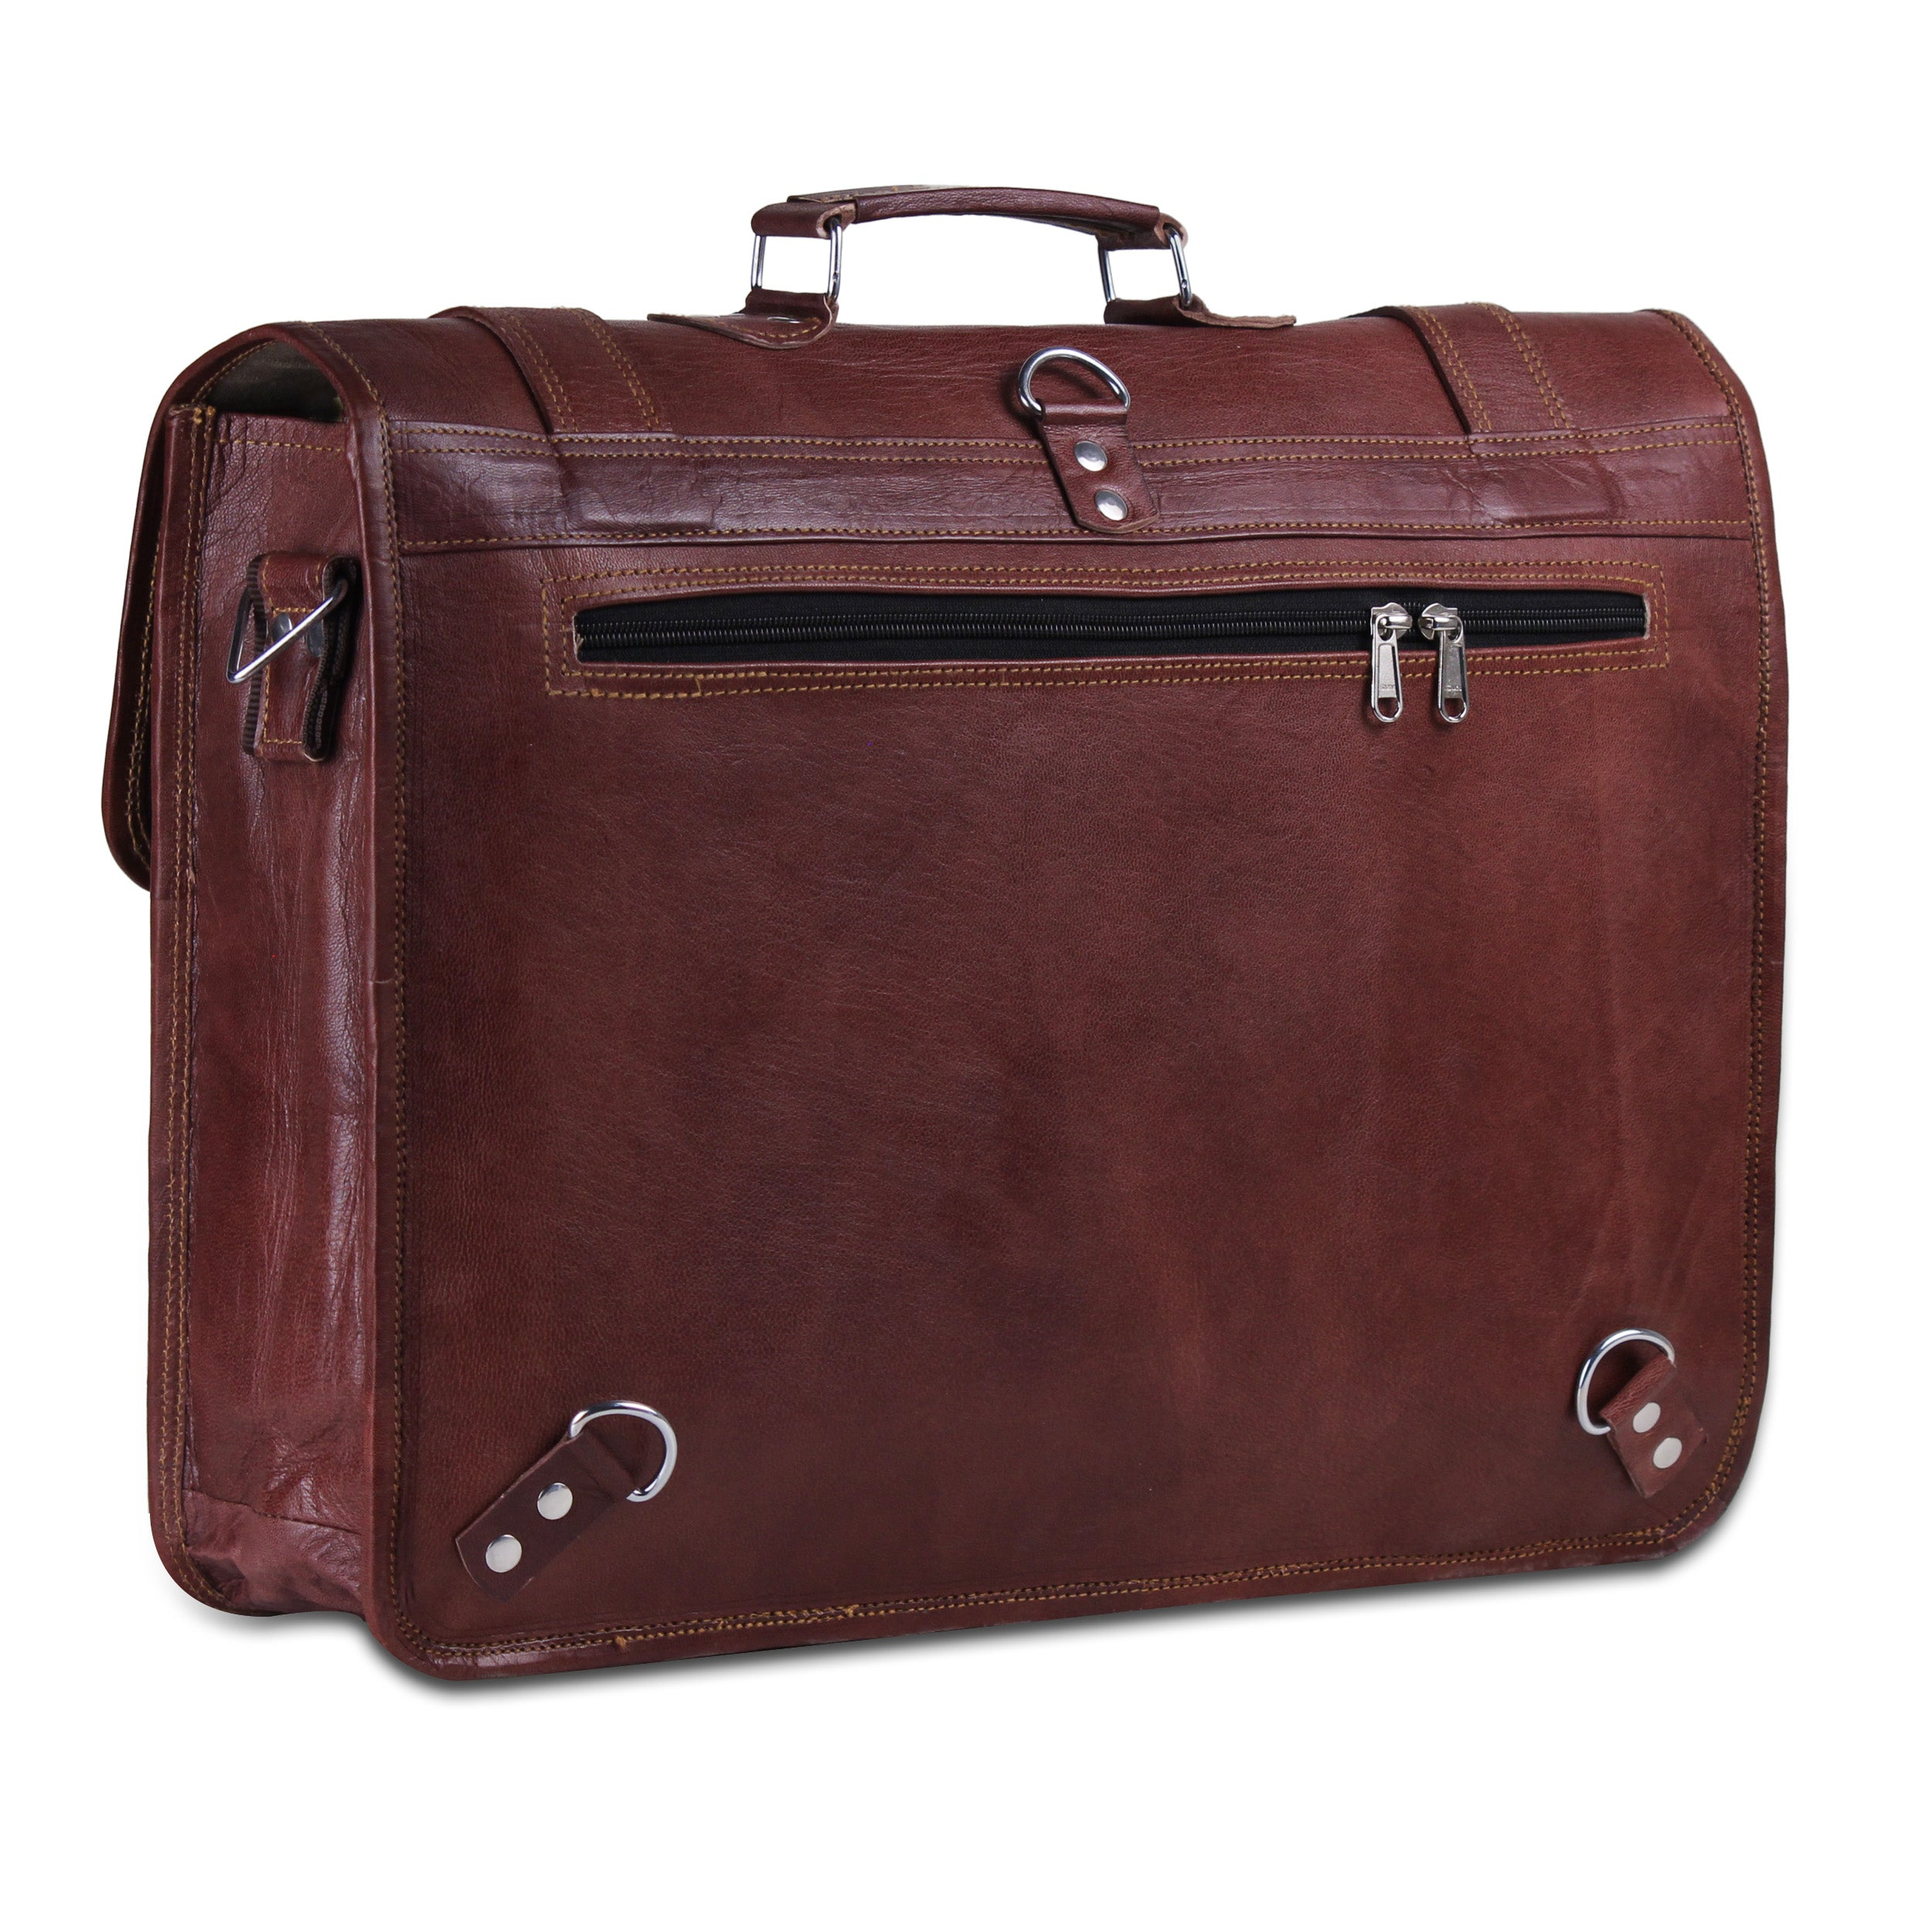 Convertible Leather Messenger Bag with Top Handle and Adjustable Straps